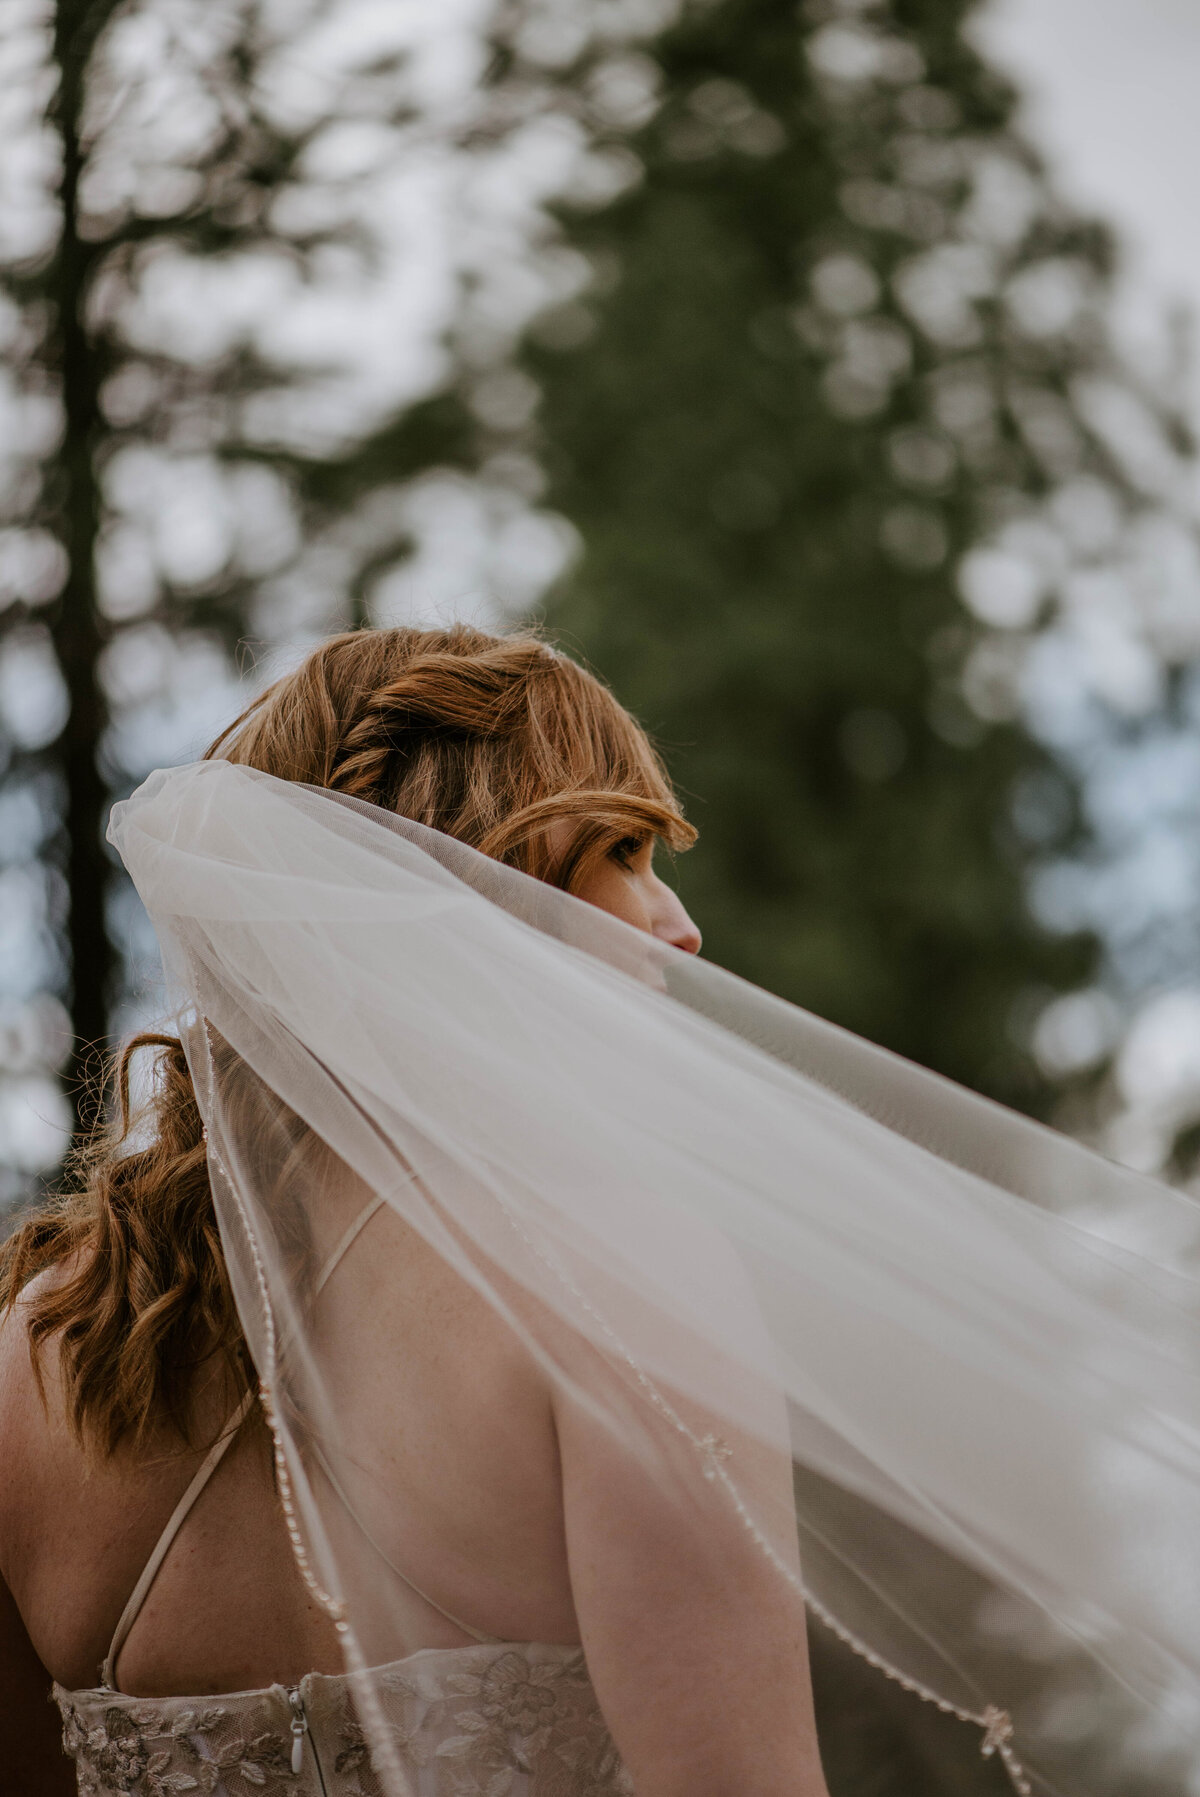 ochoco-forest-central-oregon-elopement-pnw-woods-wedding-covid-bend-photographer-inspiration3145